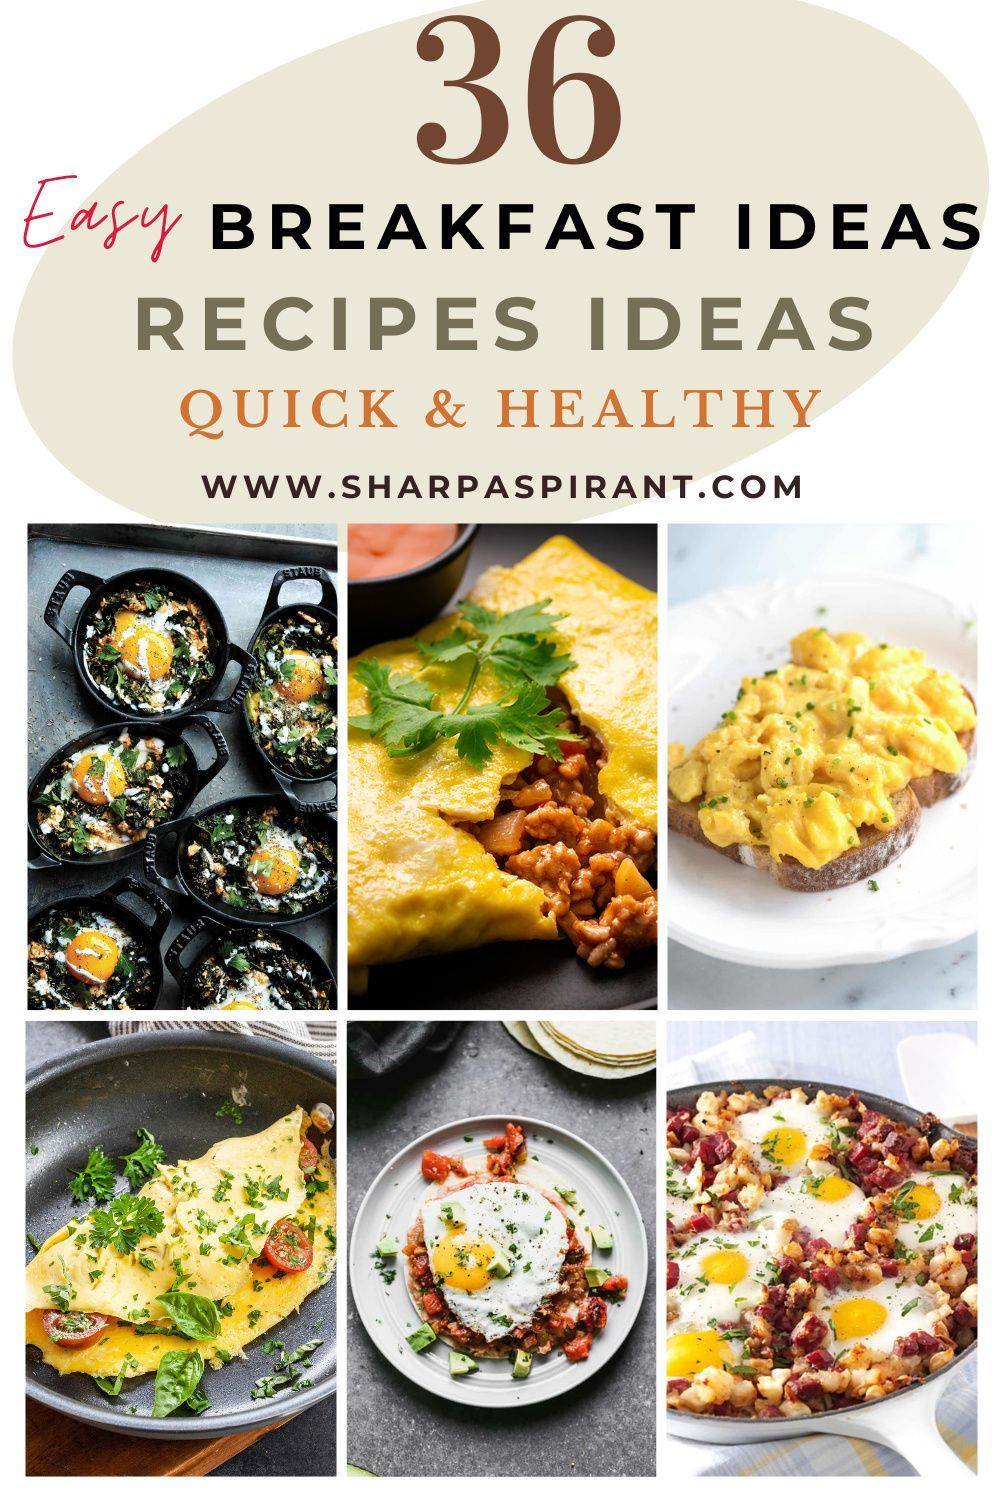 36 Easy Breakfast Ideas Quick And Healthy Breakfast Recipes The Cheerful Spirit Recipe In 2021 Healthy Breakfast Recipes Healthy Breakfast Breakfast Ideas Healthy Clean Eating